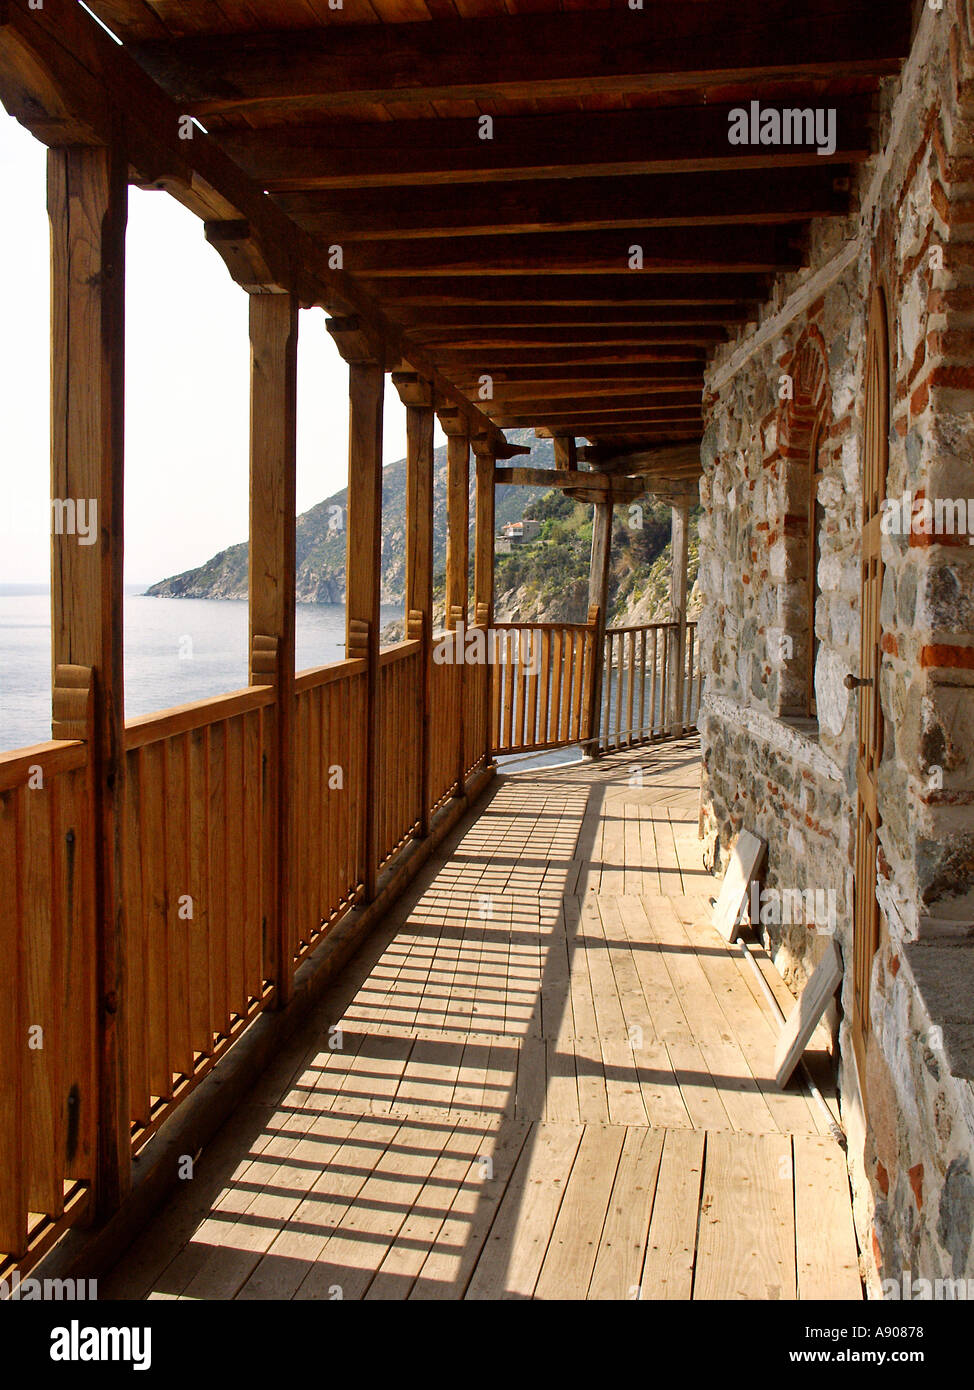 balkon mit blick auf st grigoriou agios grigorios kloster athos griechenland stockfoto bild. Black Bedroom Furniture Sets. Home Design Ideas